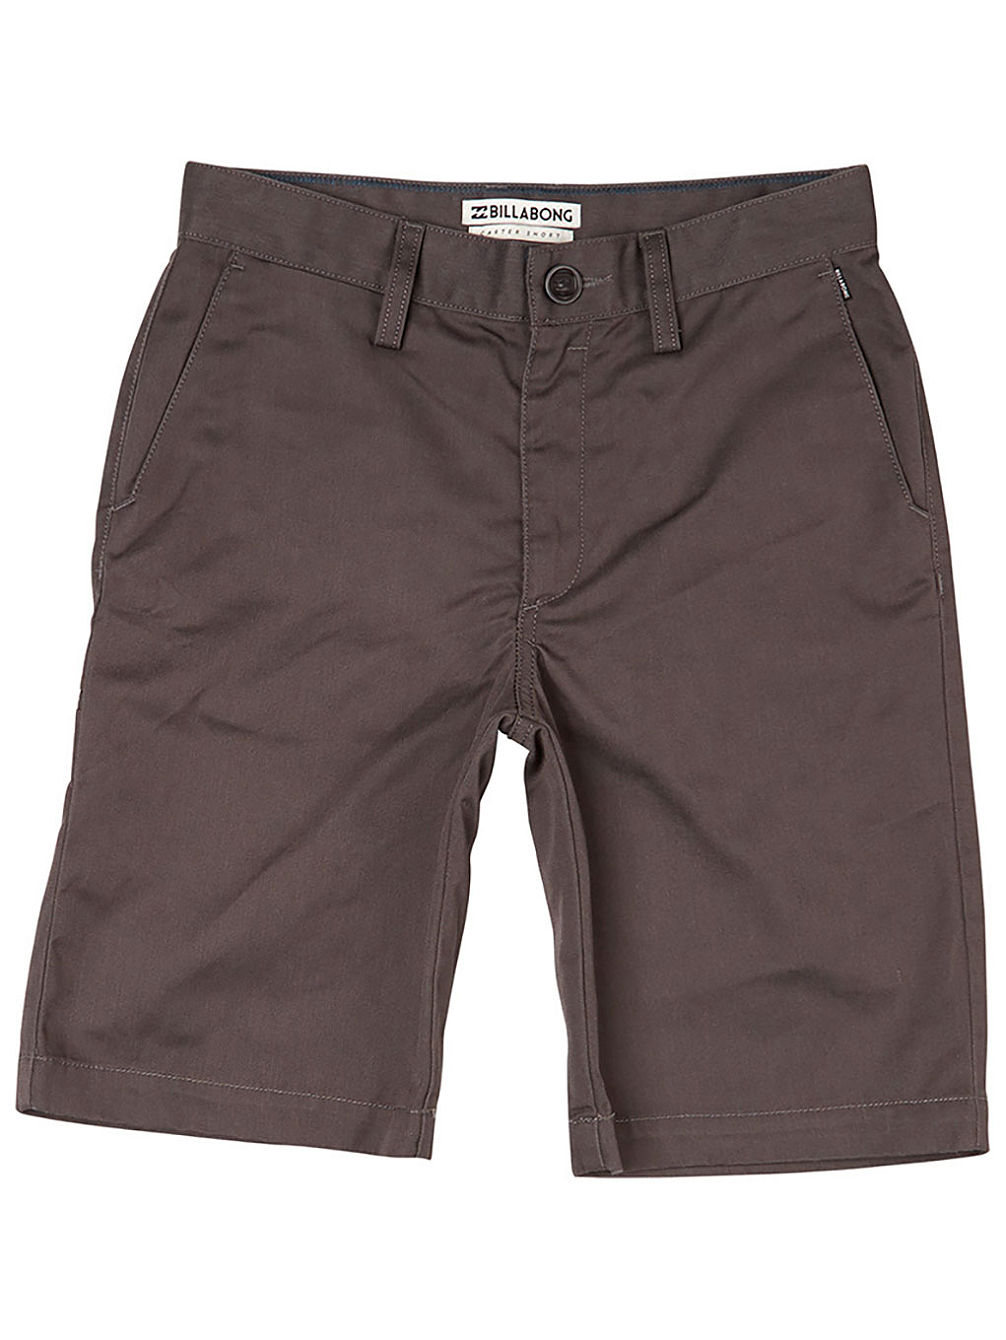 Carter Shorts Boys